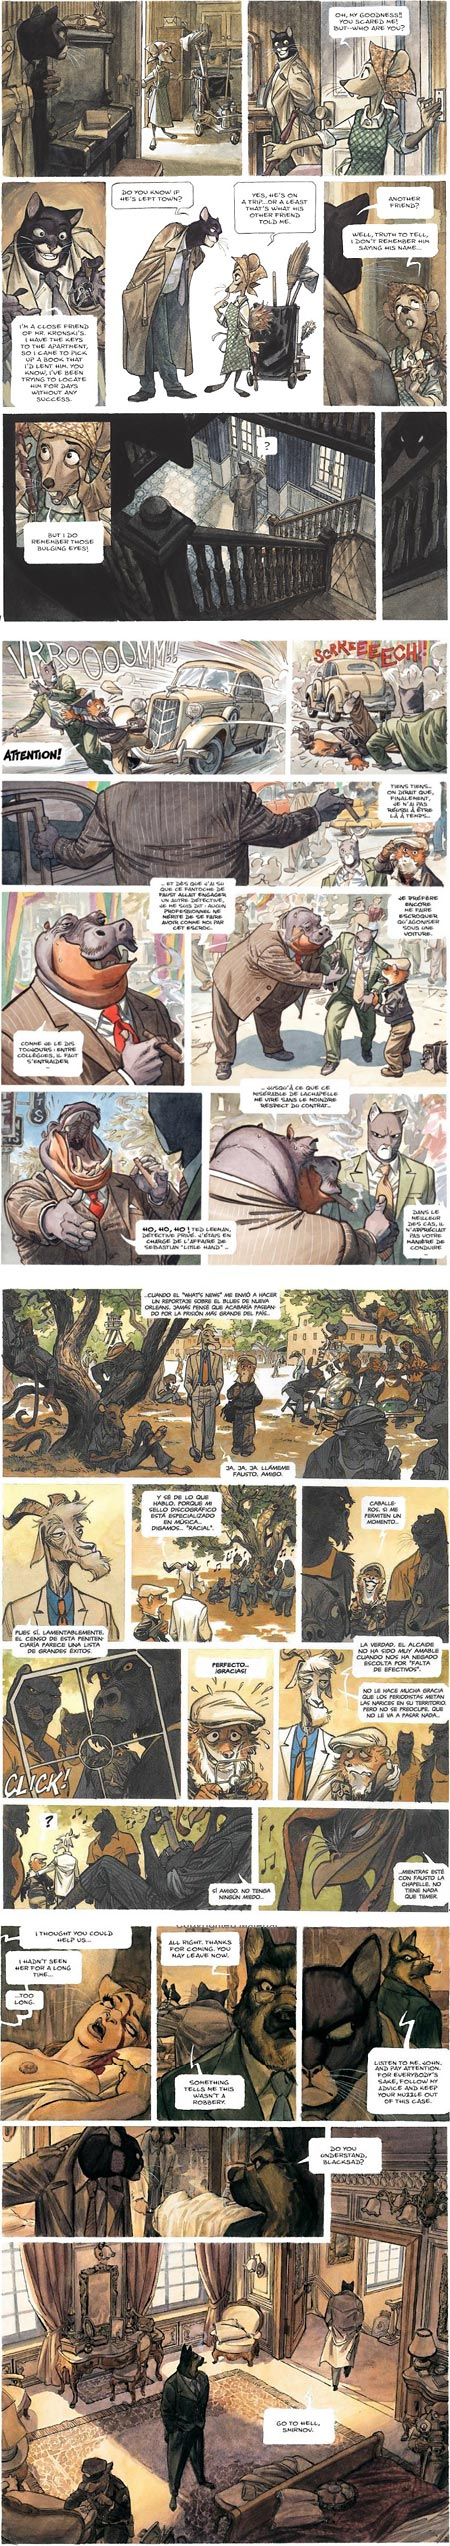 Blacksad (Juanjo Guarnido)